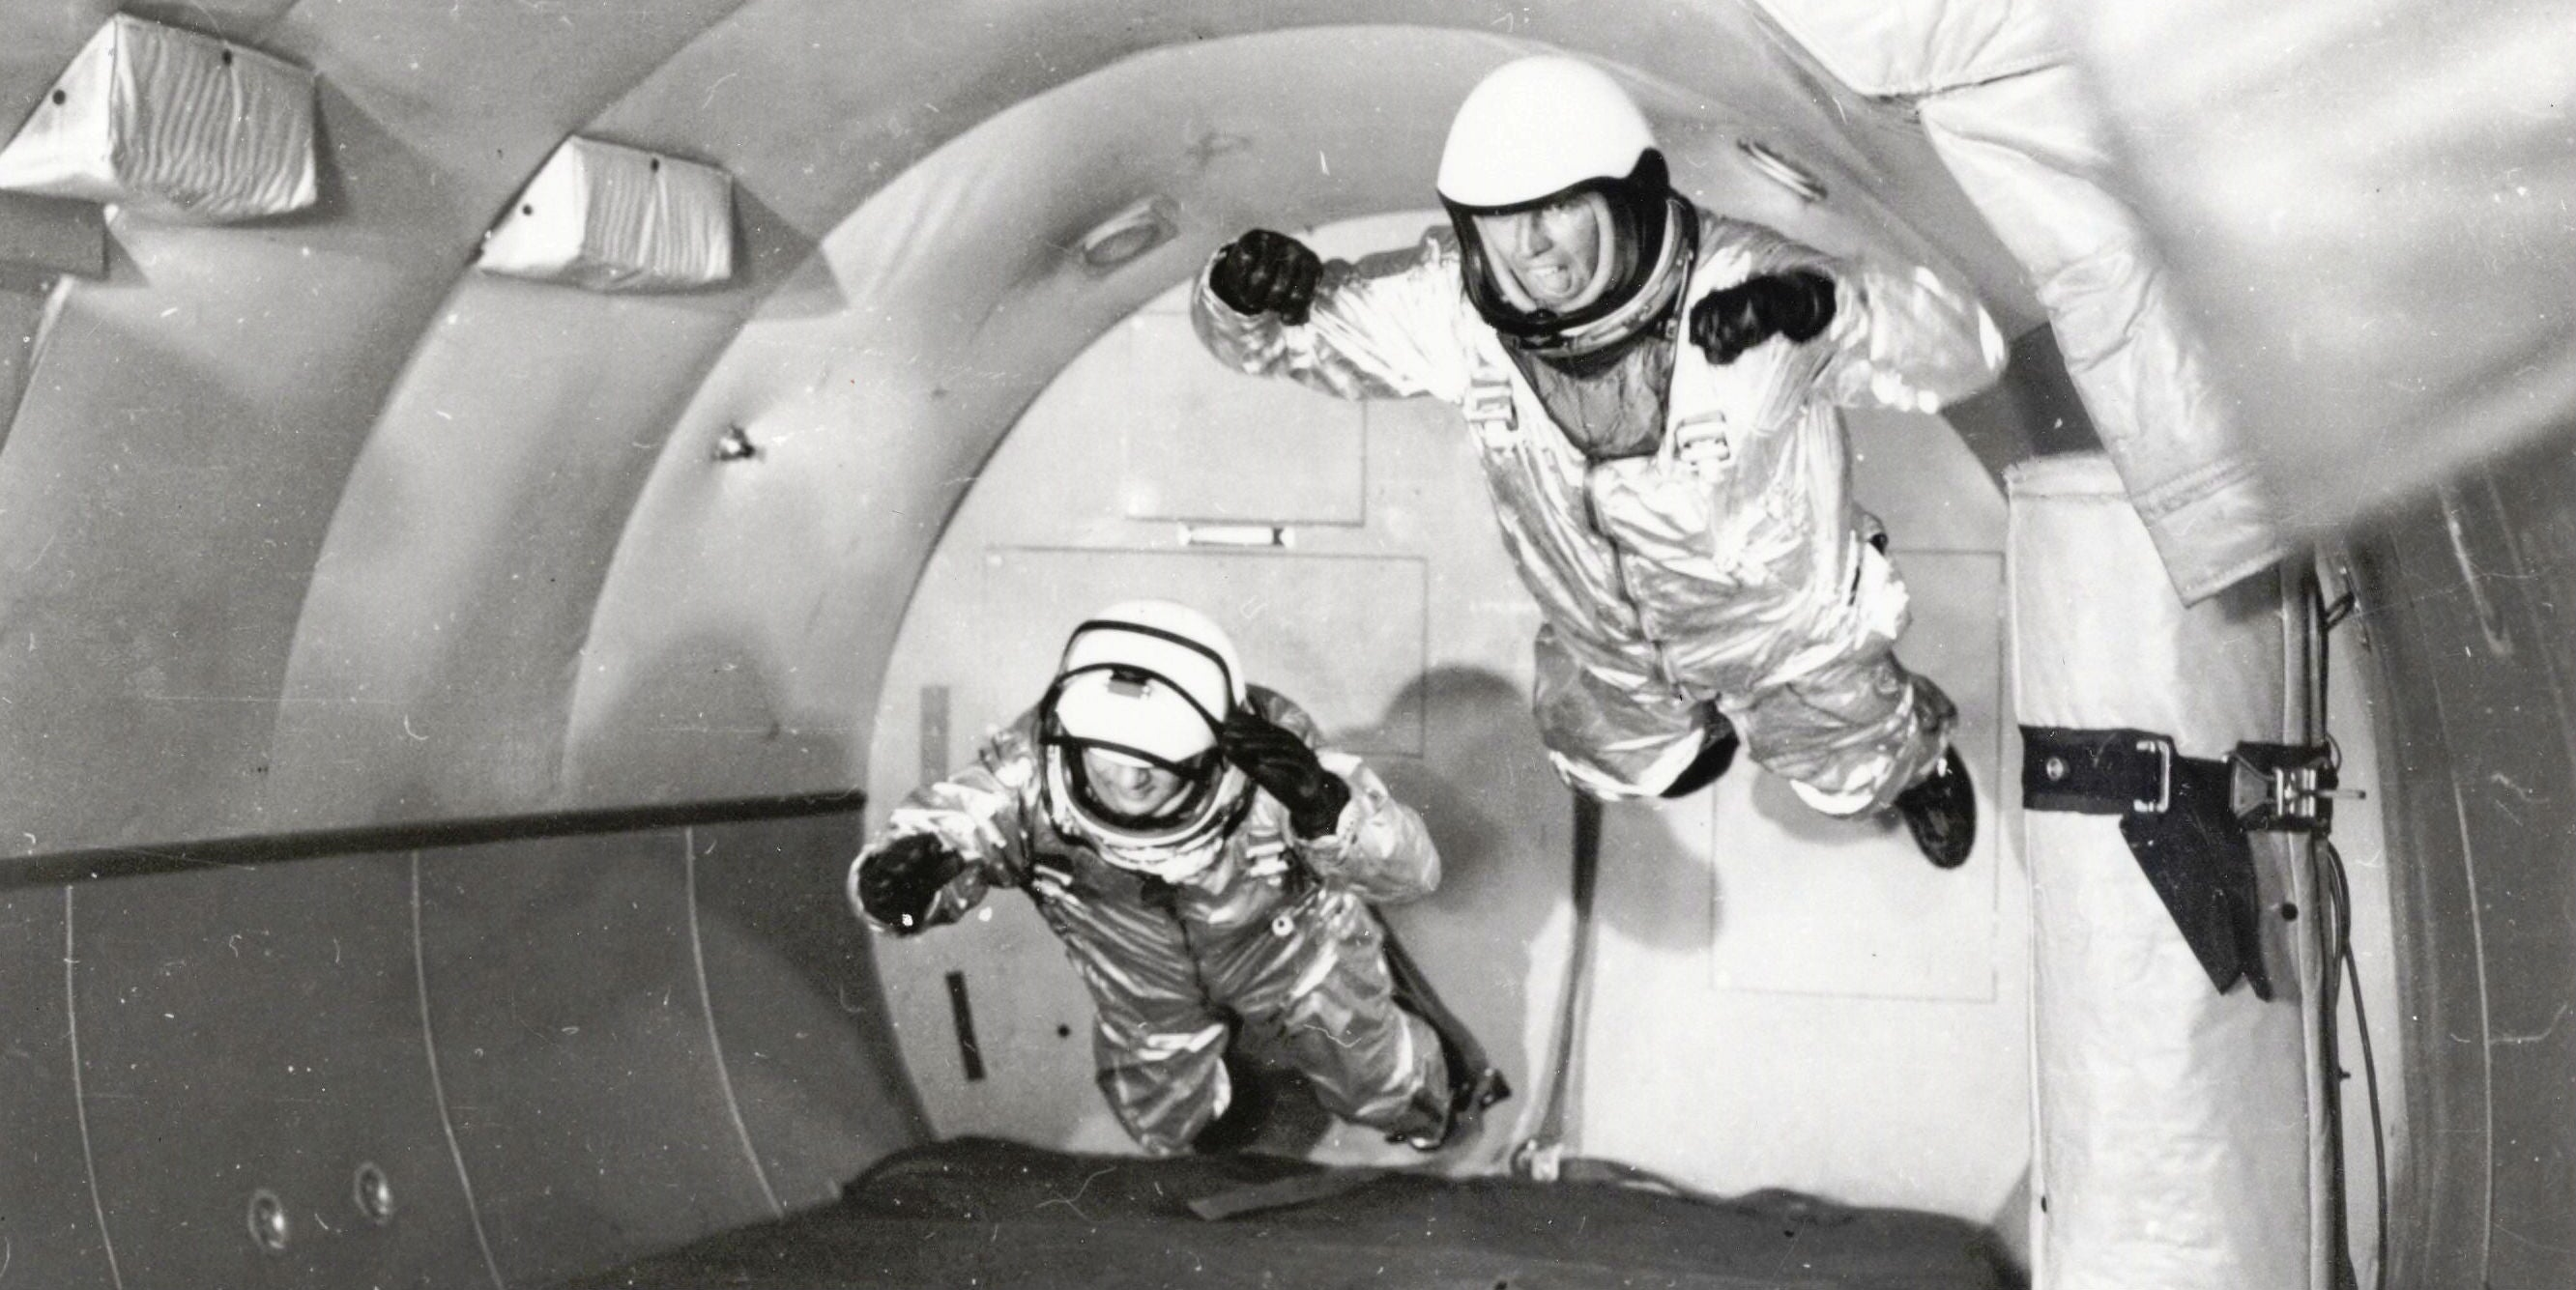 NASA's Vomit Comet Trains Astronauts in the Ways of Weightlessness